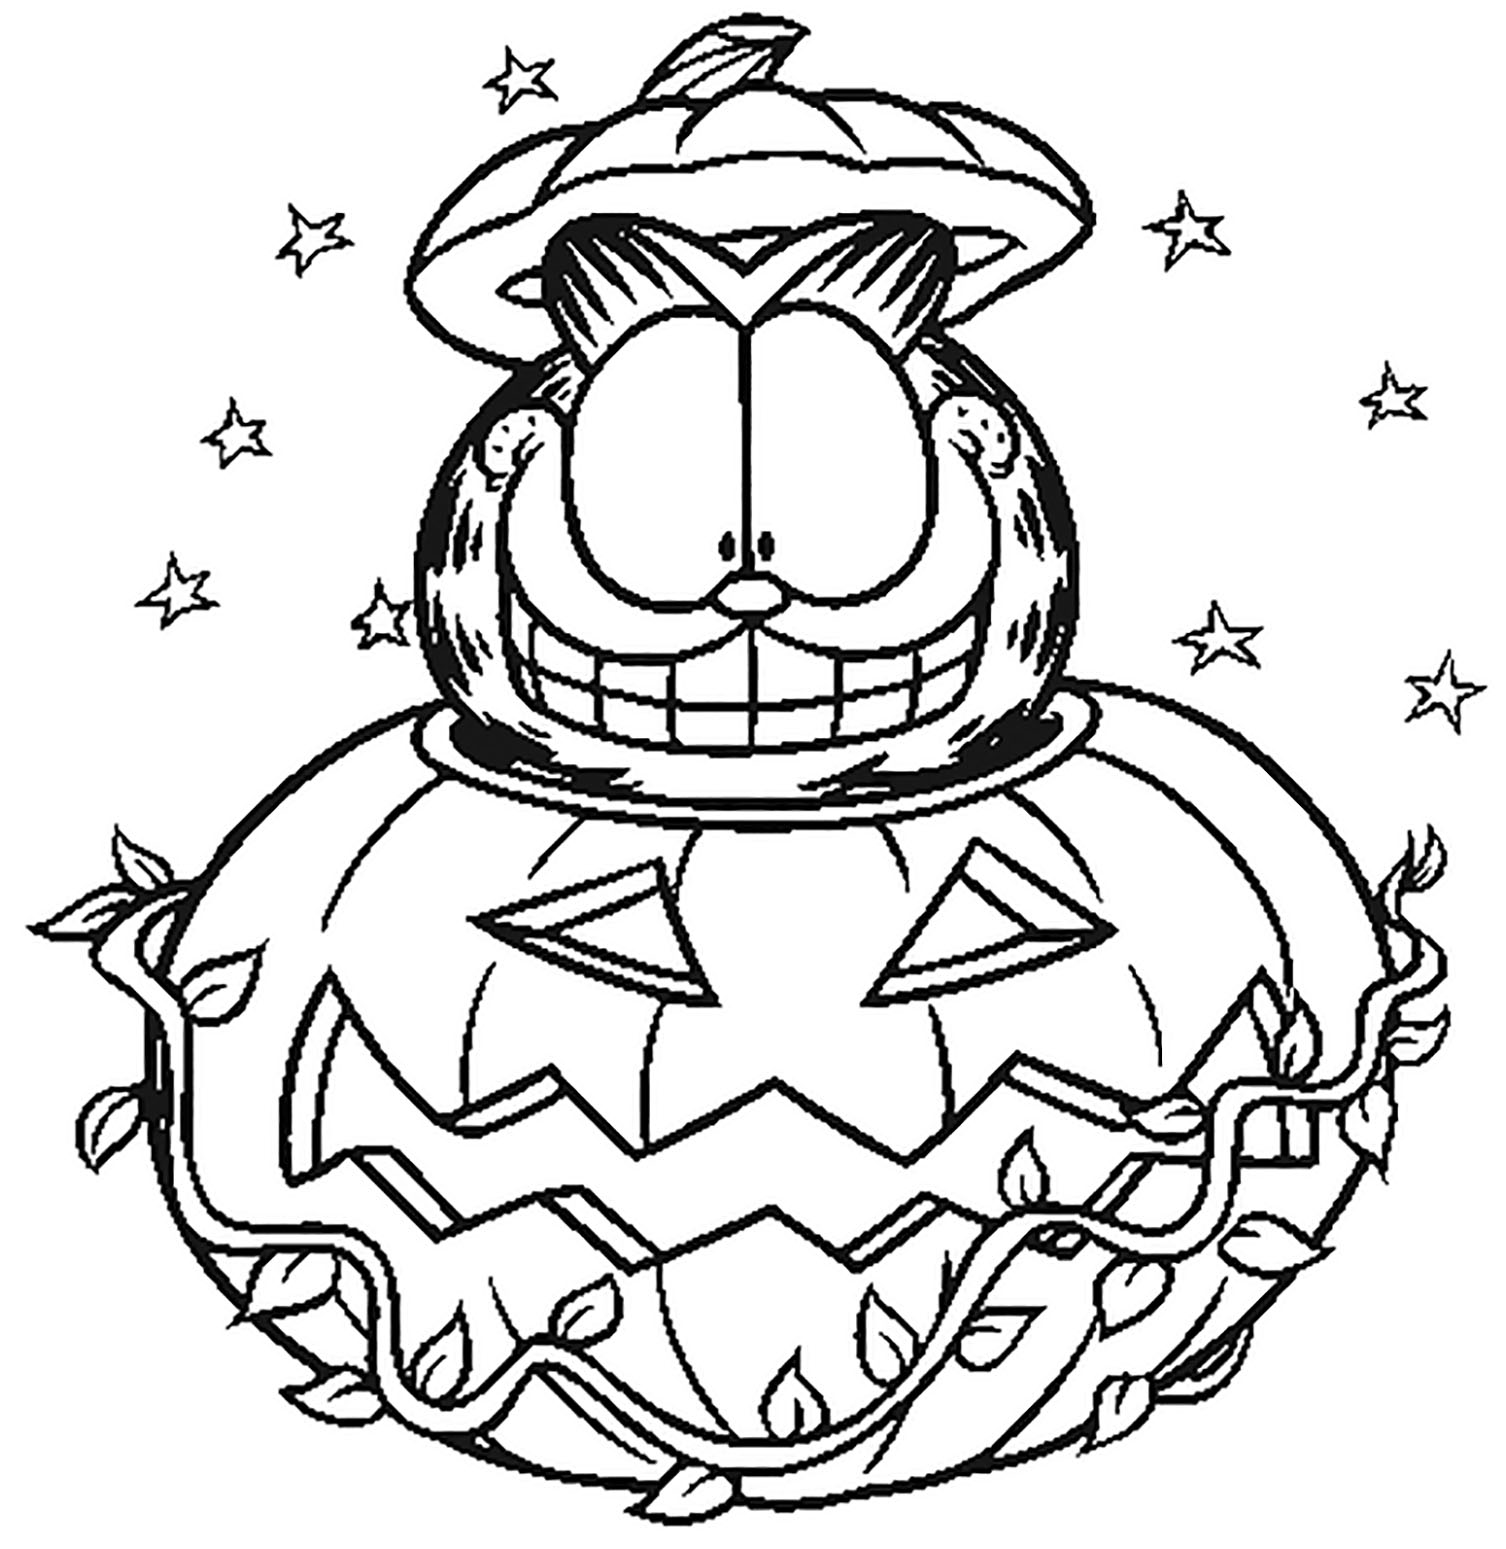 garfield for coloring garfield free to color for children garfield kids coloring for garfield